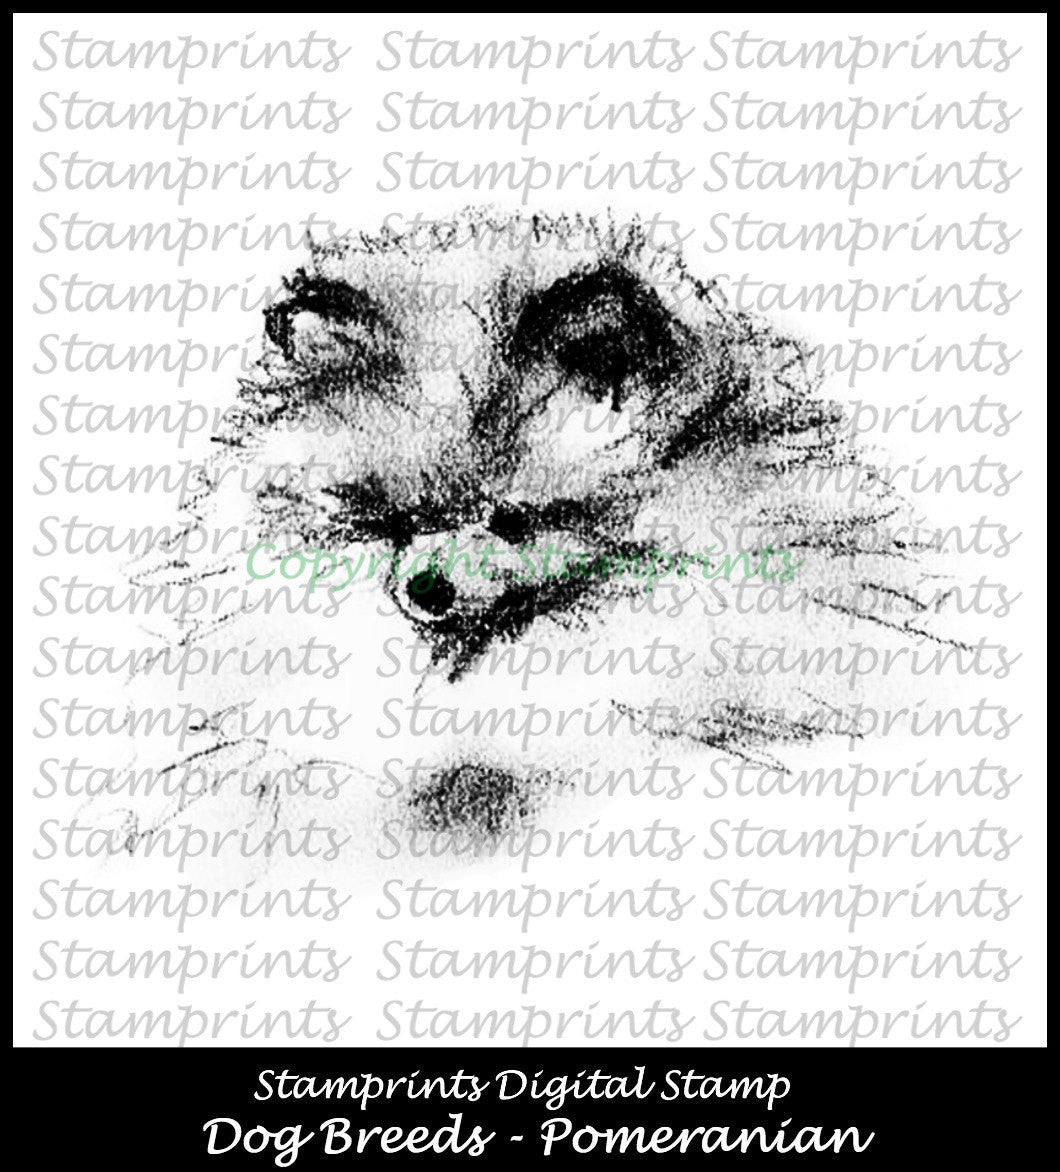 Digital Stamp: Dog Breeds - Pomeranian (by Stamprints)